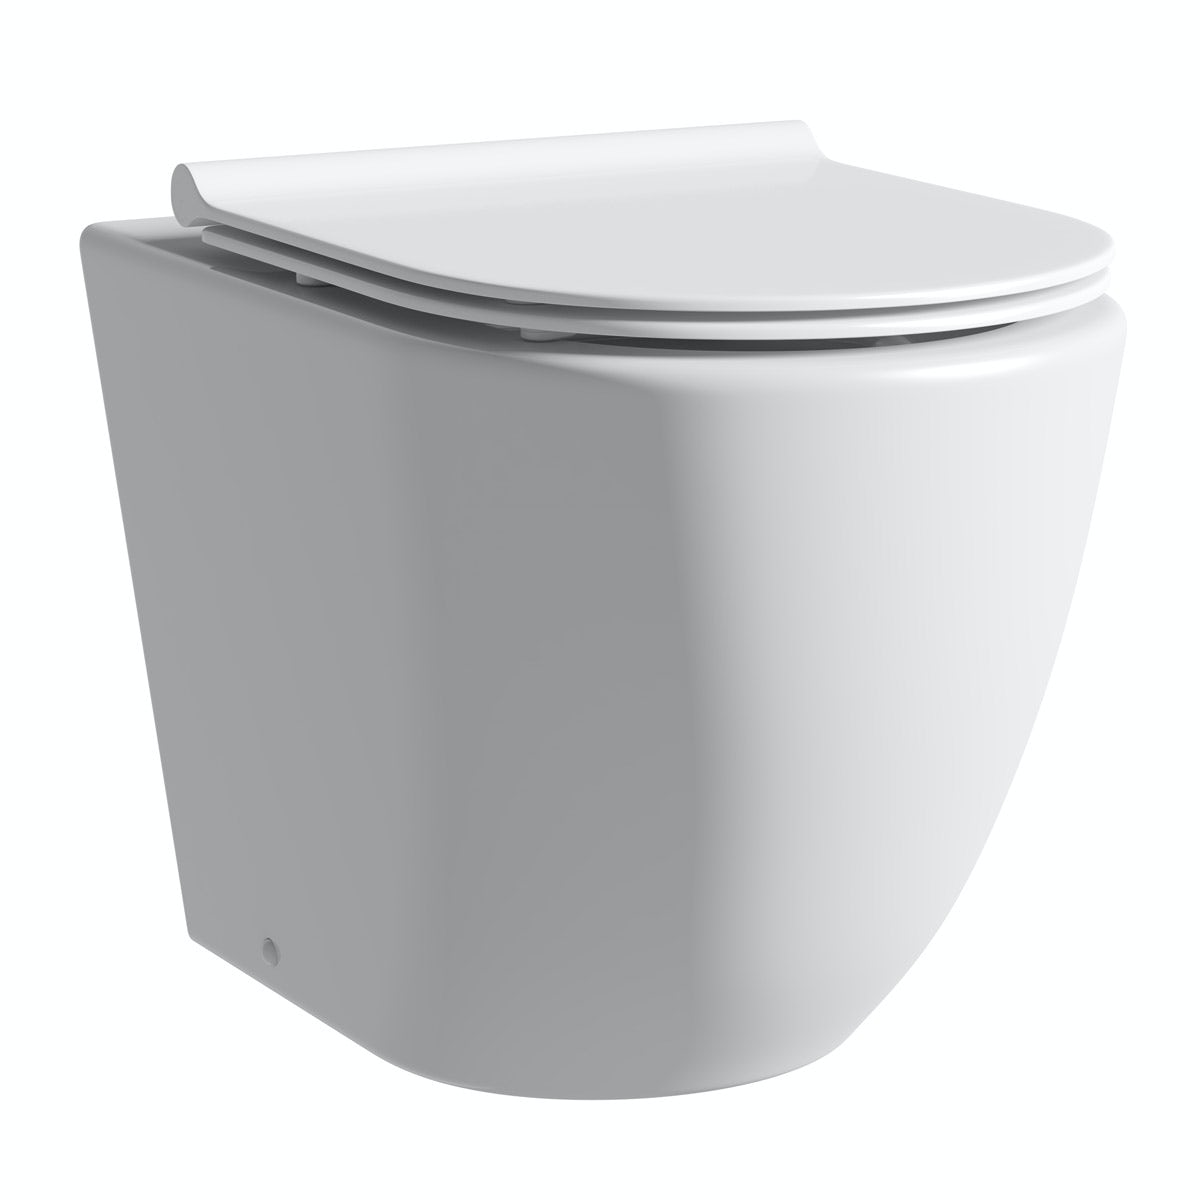 Mode Harrison rimless back to wall toilet with slimline soft close seat